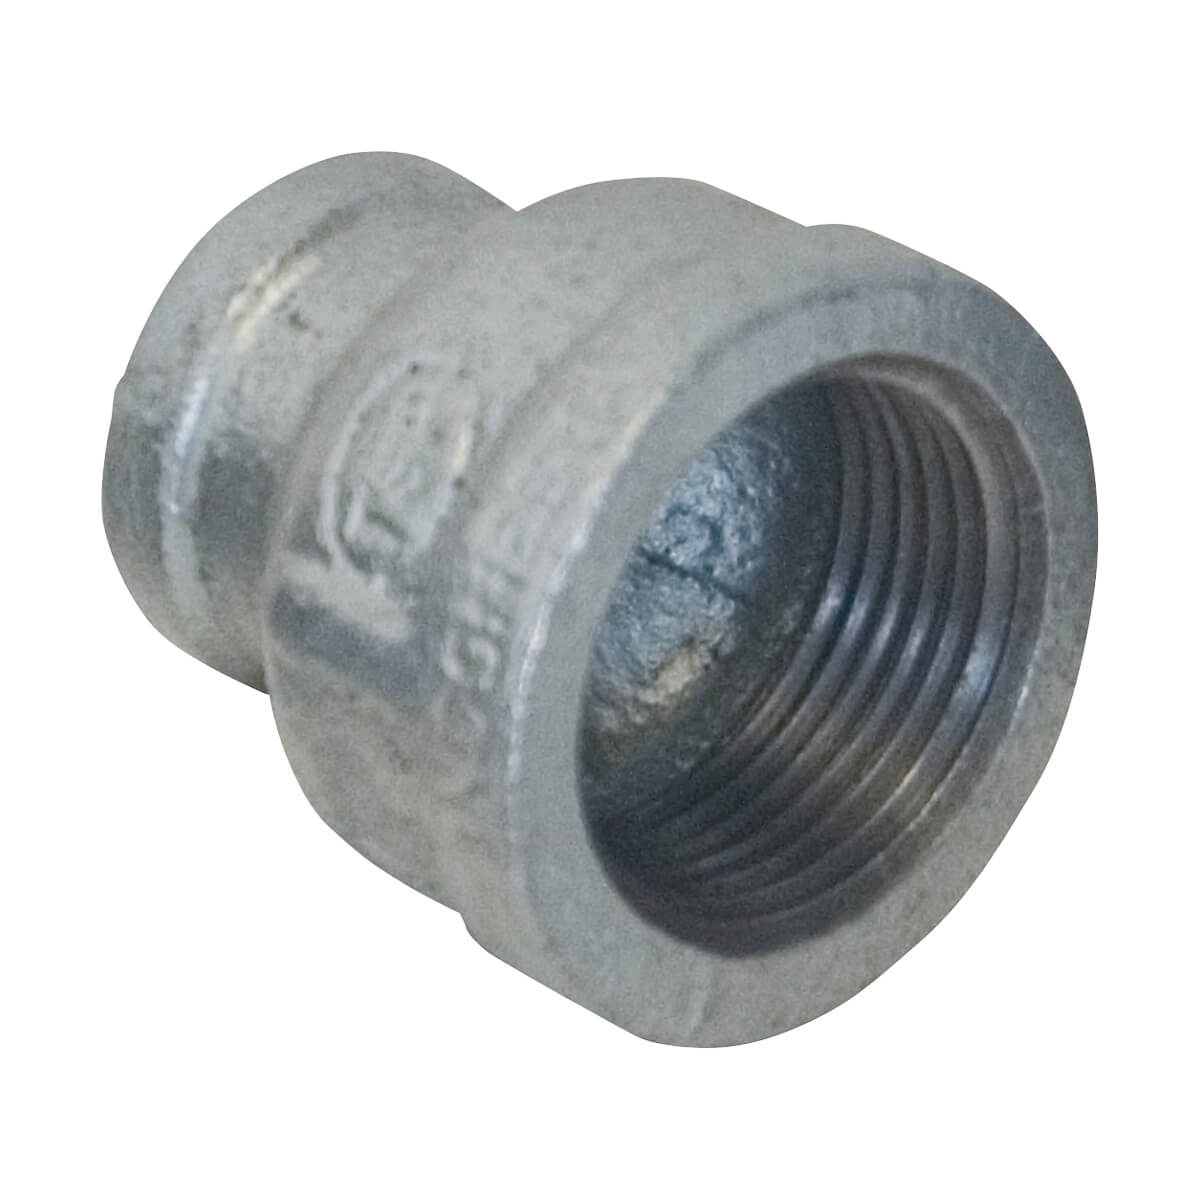 Galvanized Coupling Reducer - 1/2-in x 3/8-in